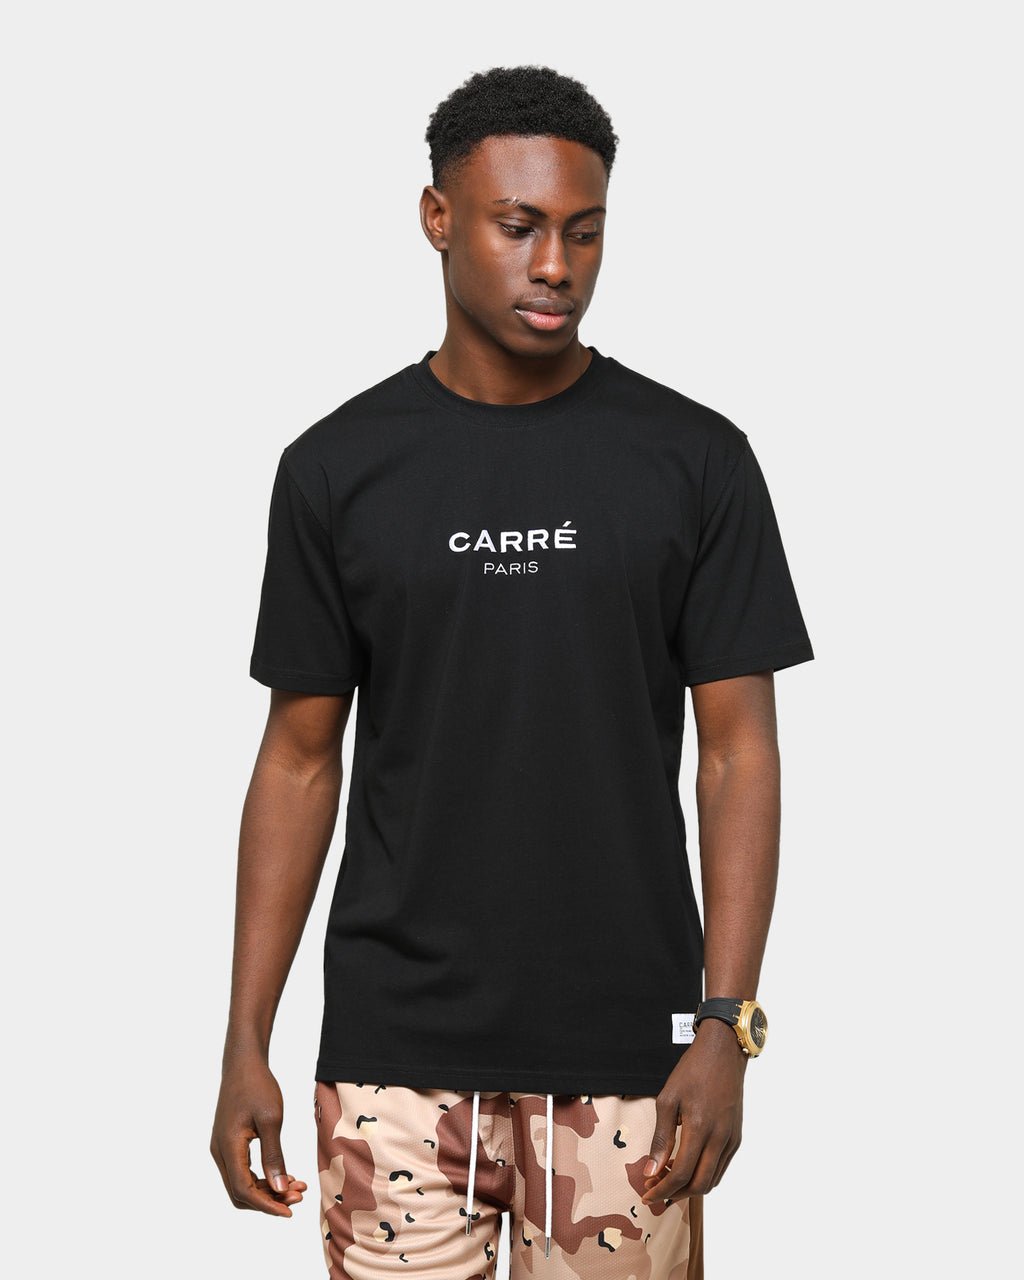 Carré Men's Staple Classique Short Sleeve T-Shirt Black